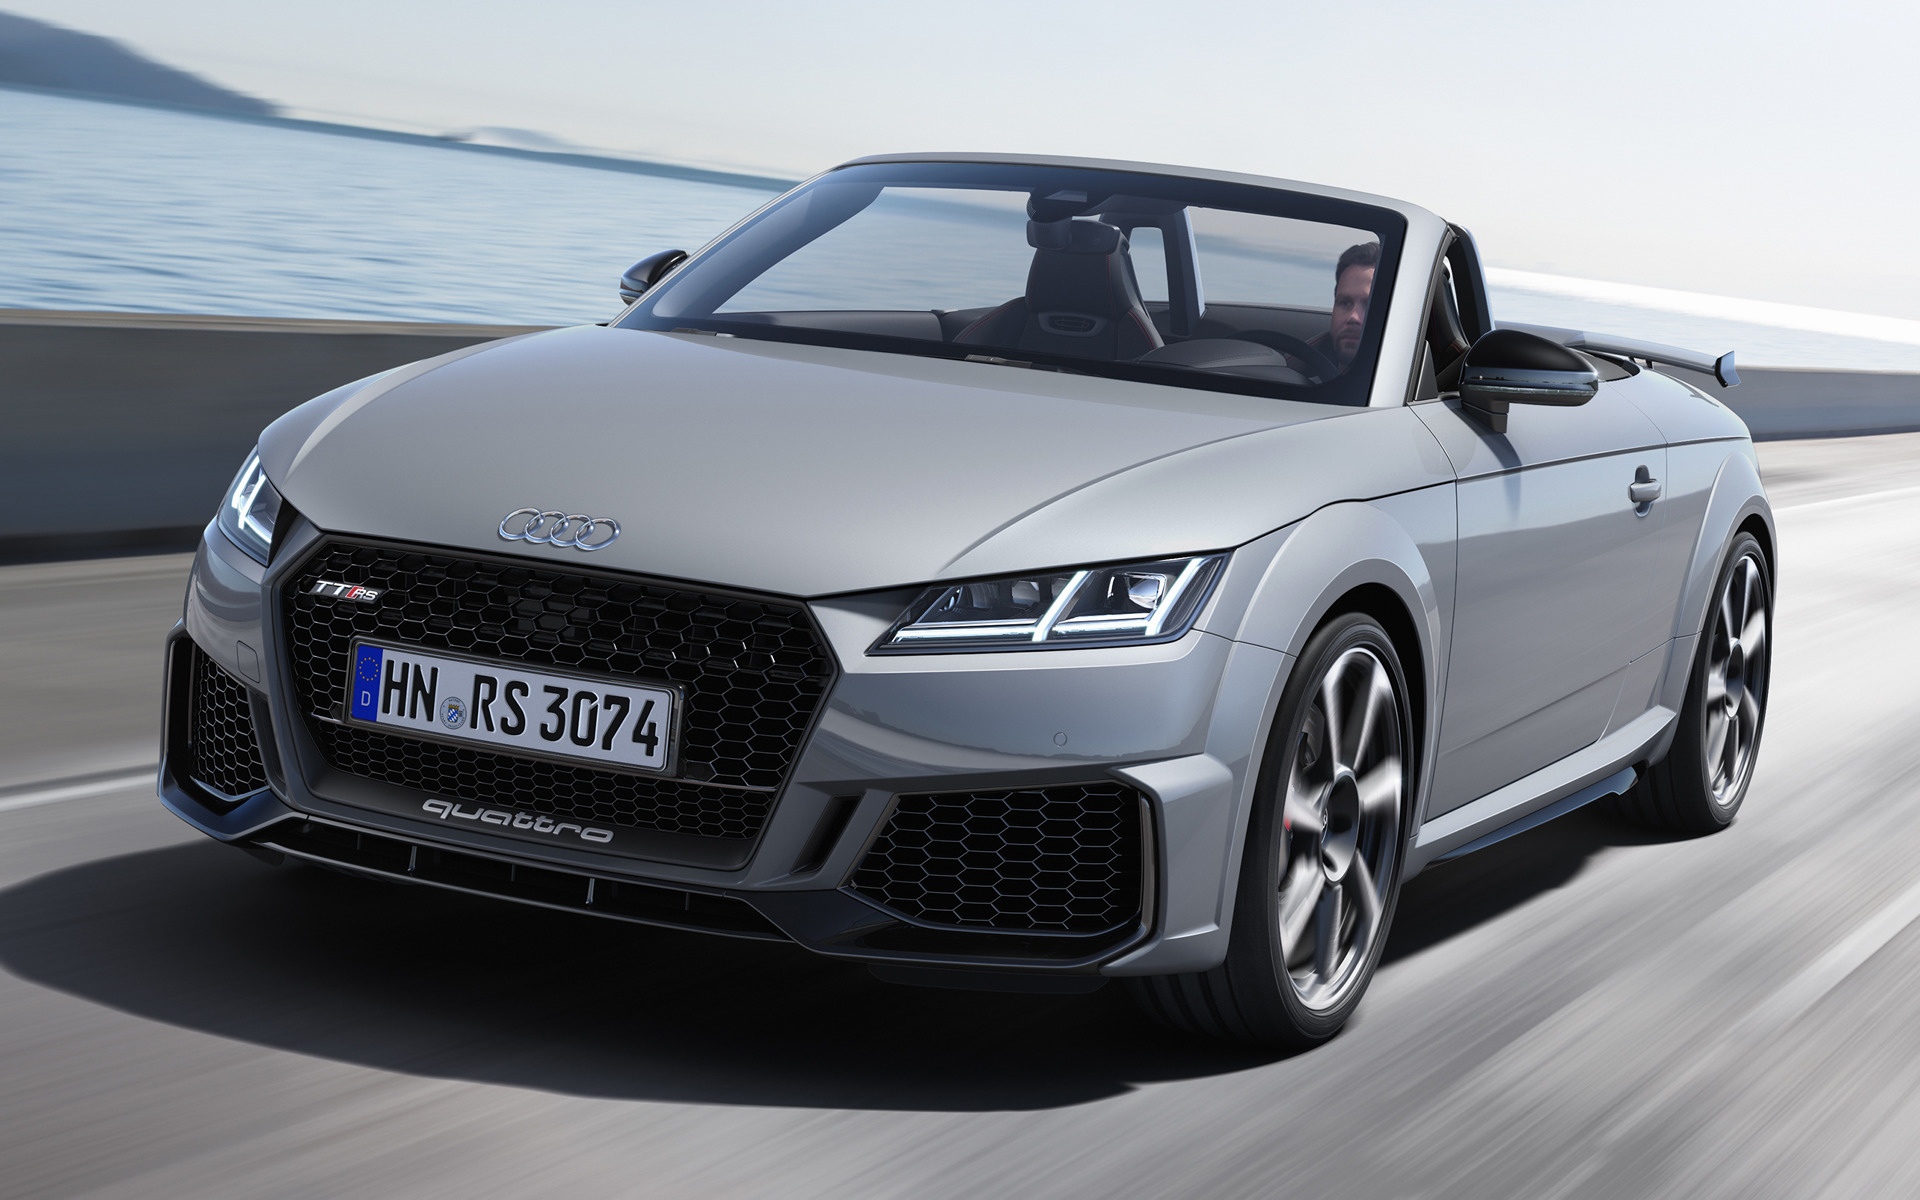 2019 Audi Tt Rs Roadster Wallpapers And Hd Images Car Pixel